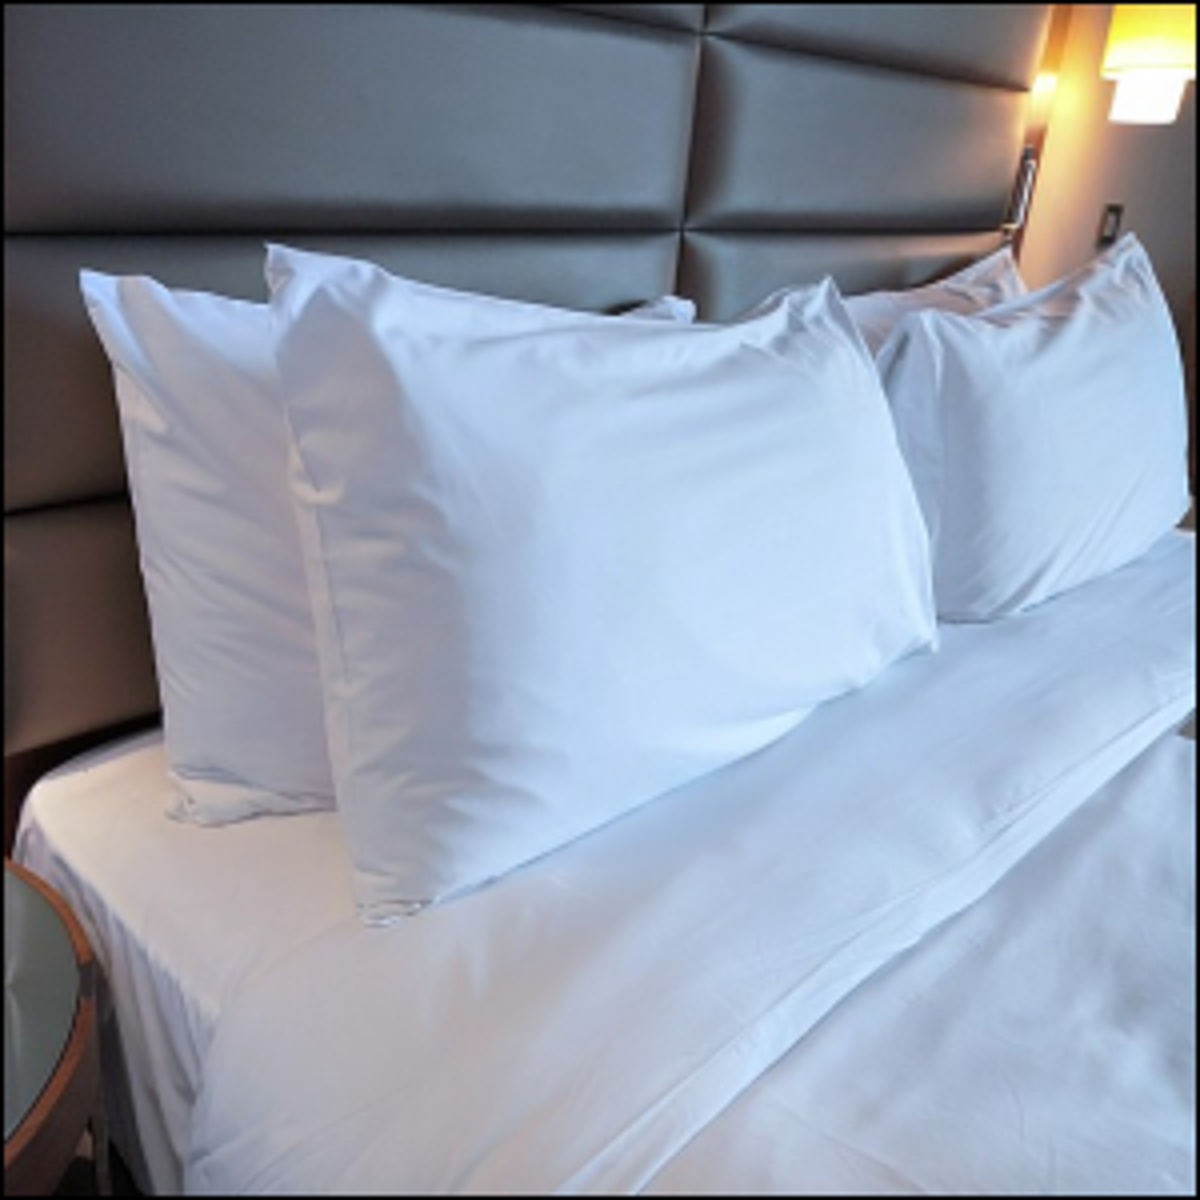 A set of four pillows on a hotel bed.